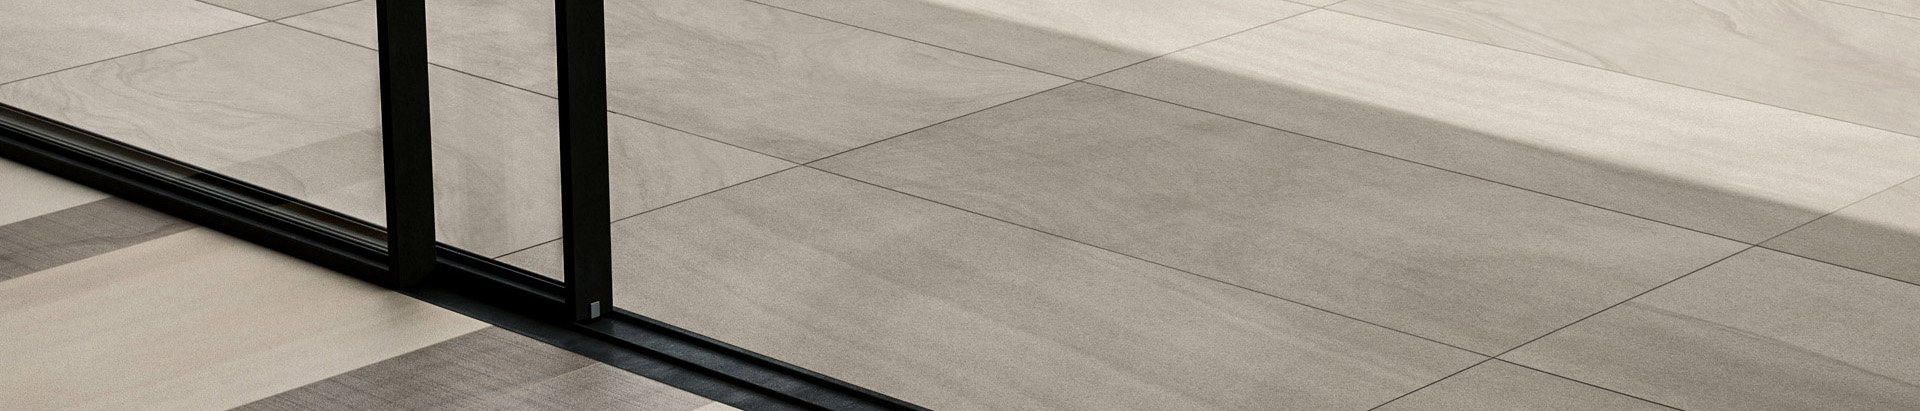 Massive savings on Porcelain Tiles - Shop Now!